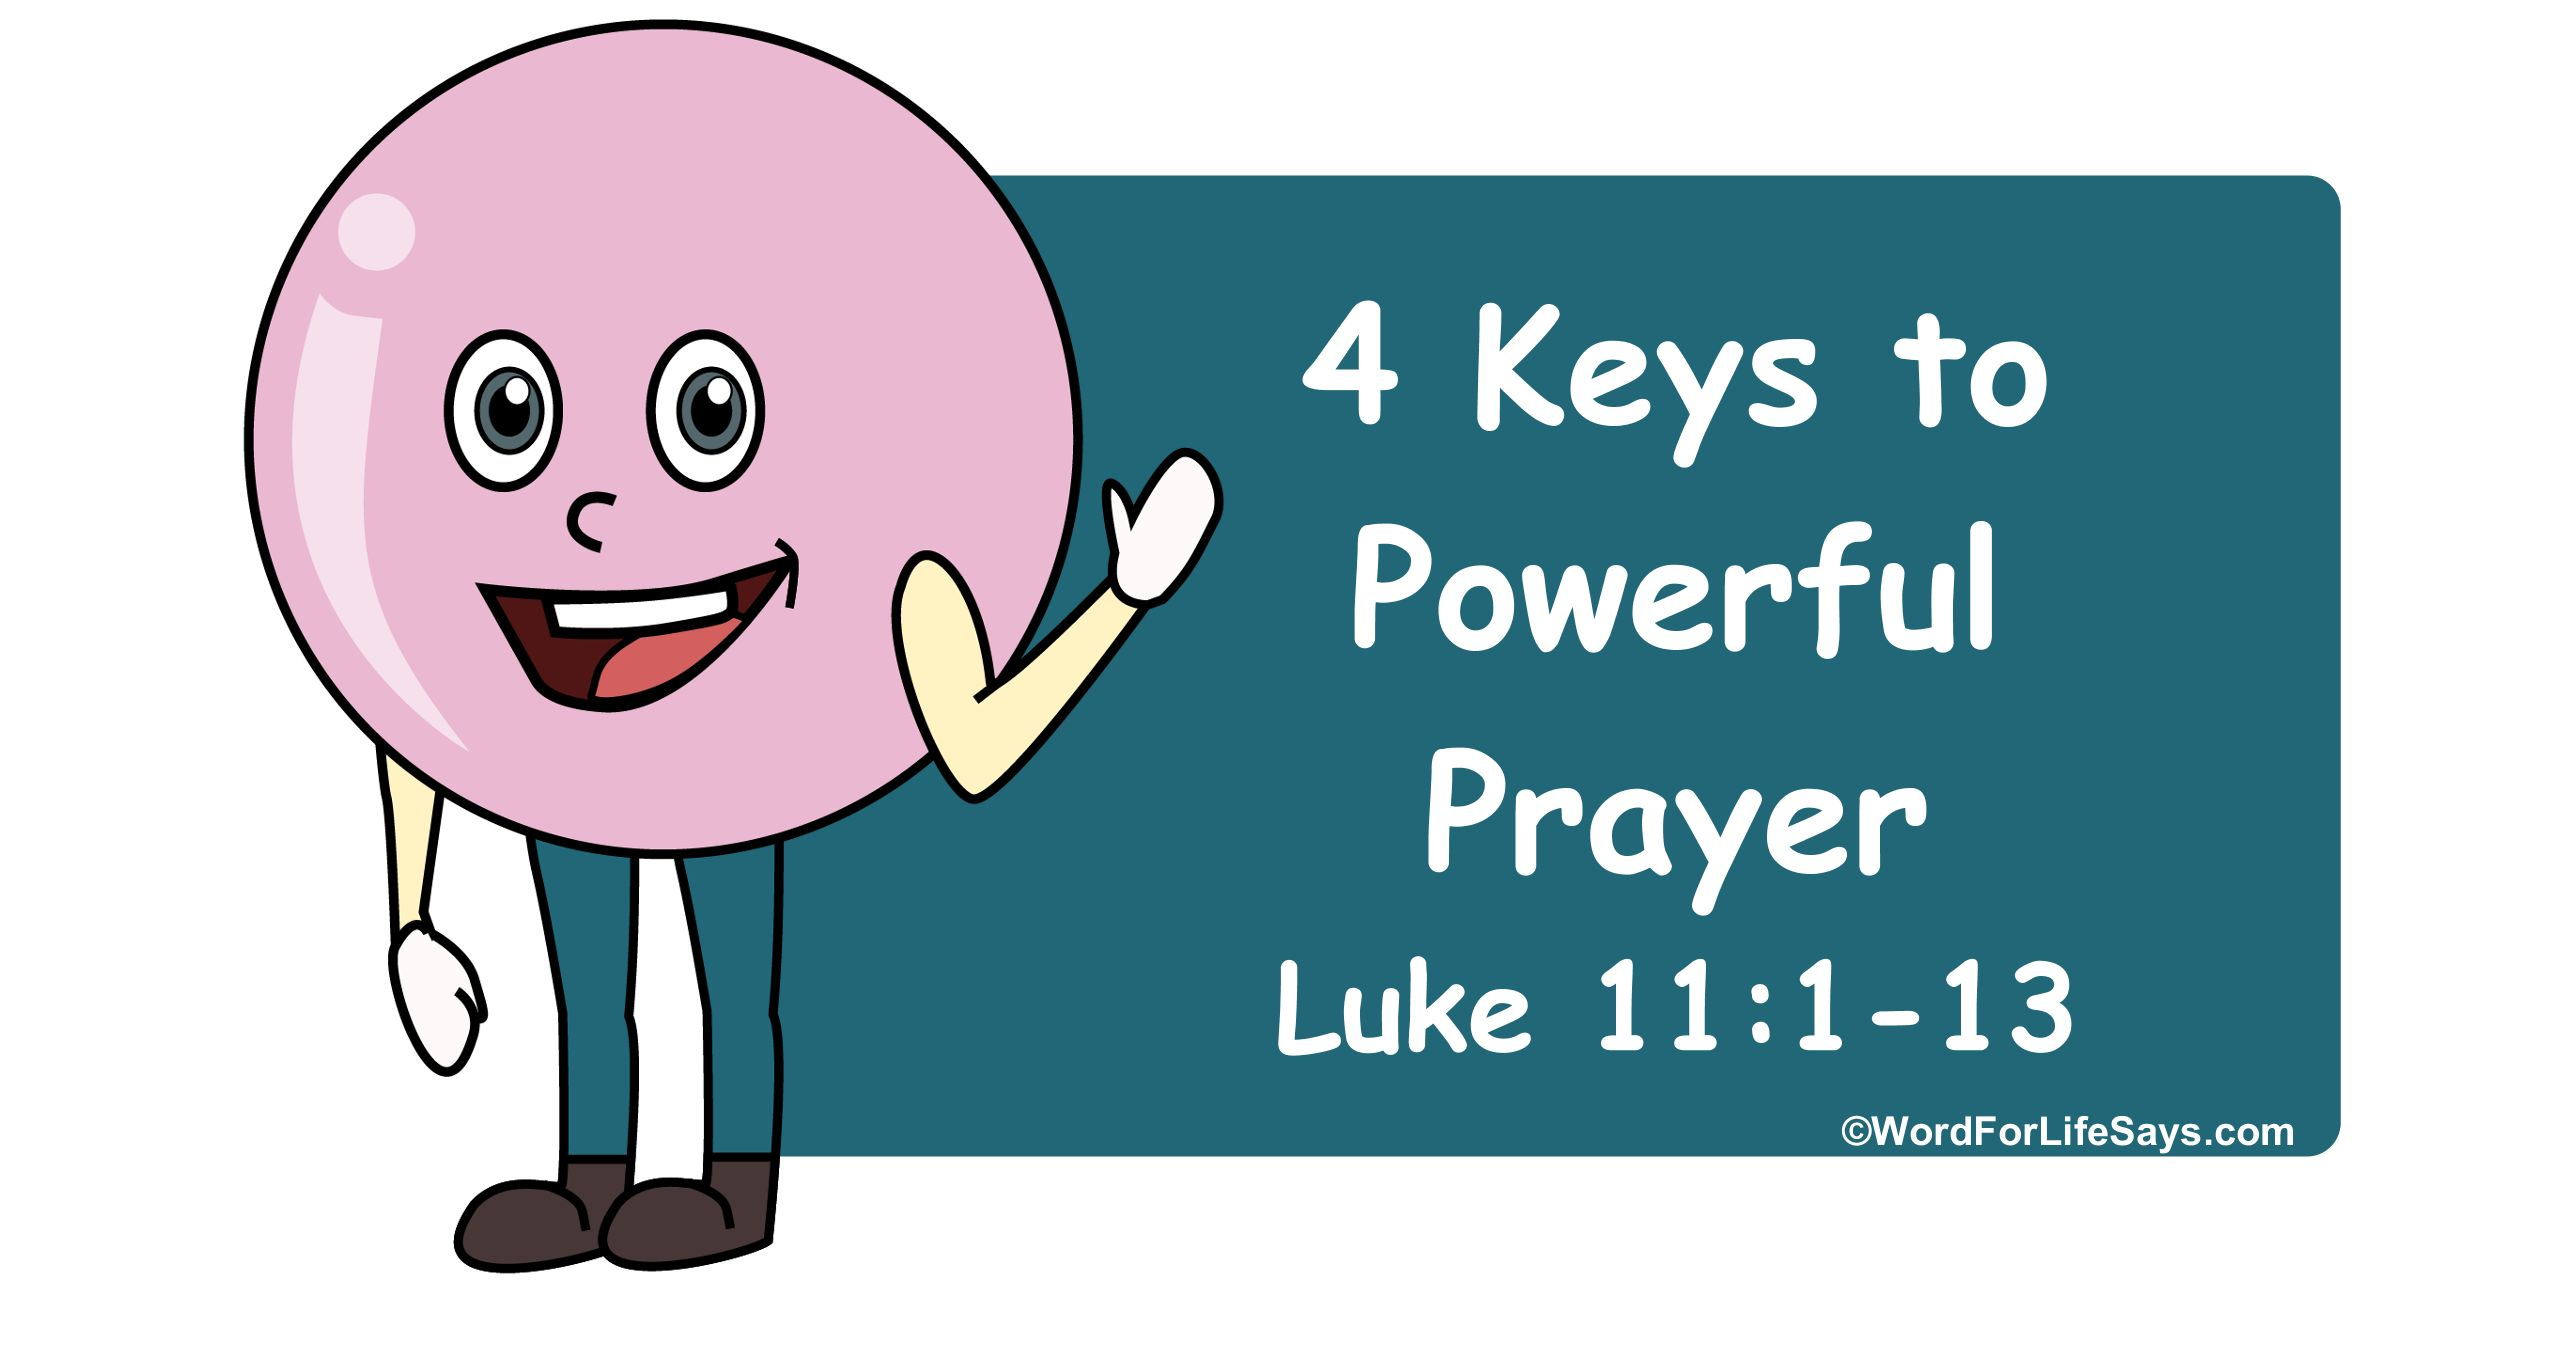 Sunday School Lesson 4 Keys To Powerful Prayer Luke 11